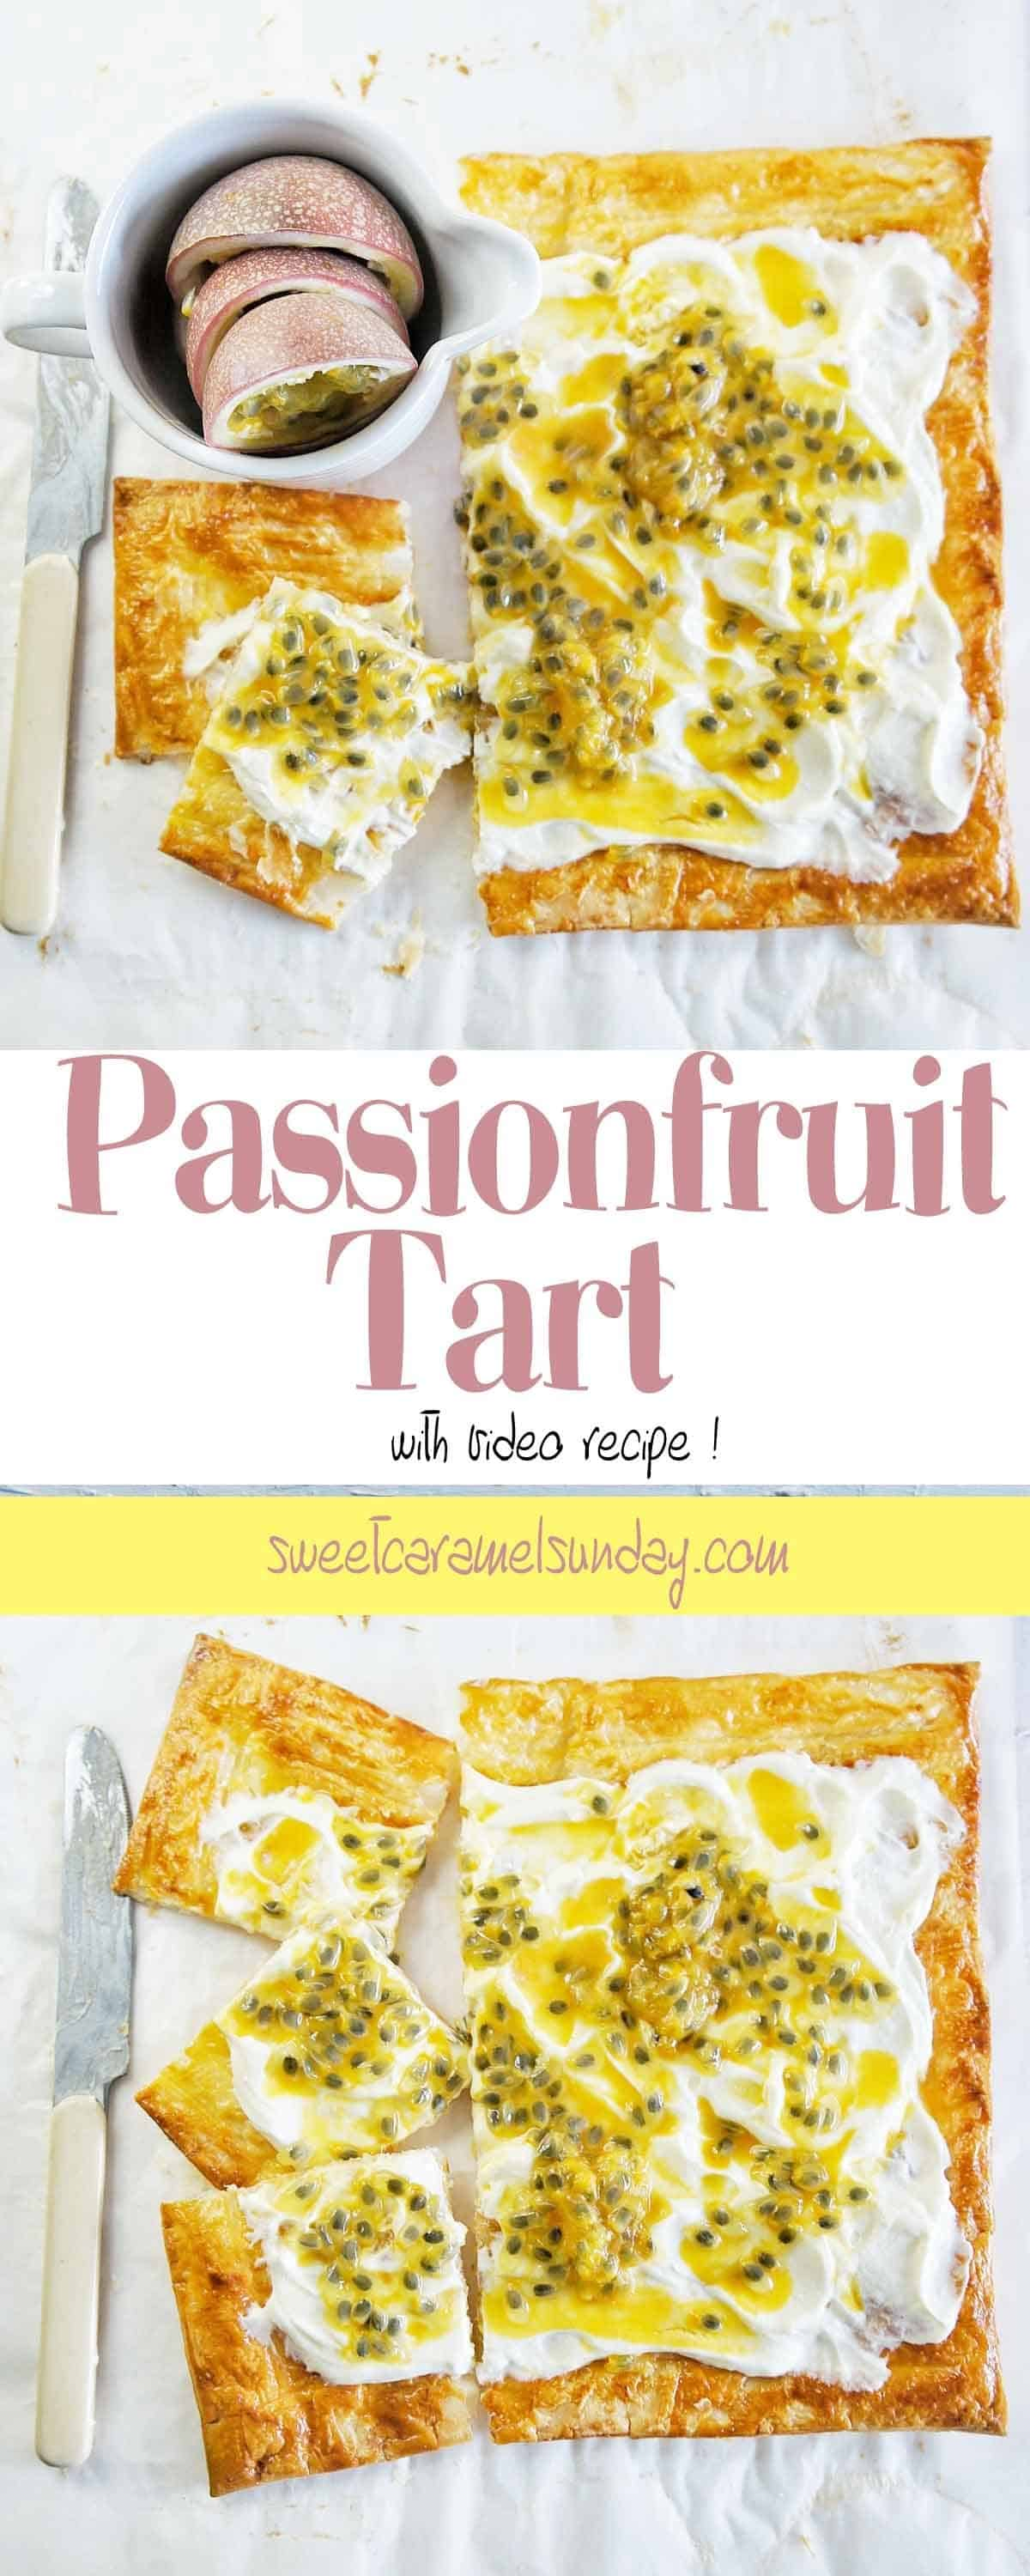 Passionfruit Tart on a white background with text overlay